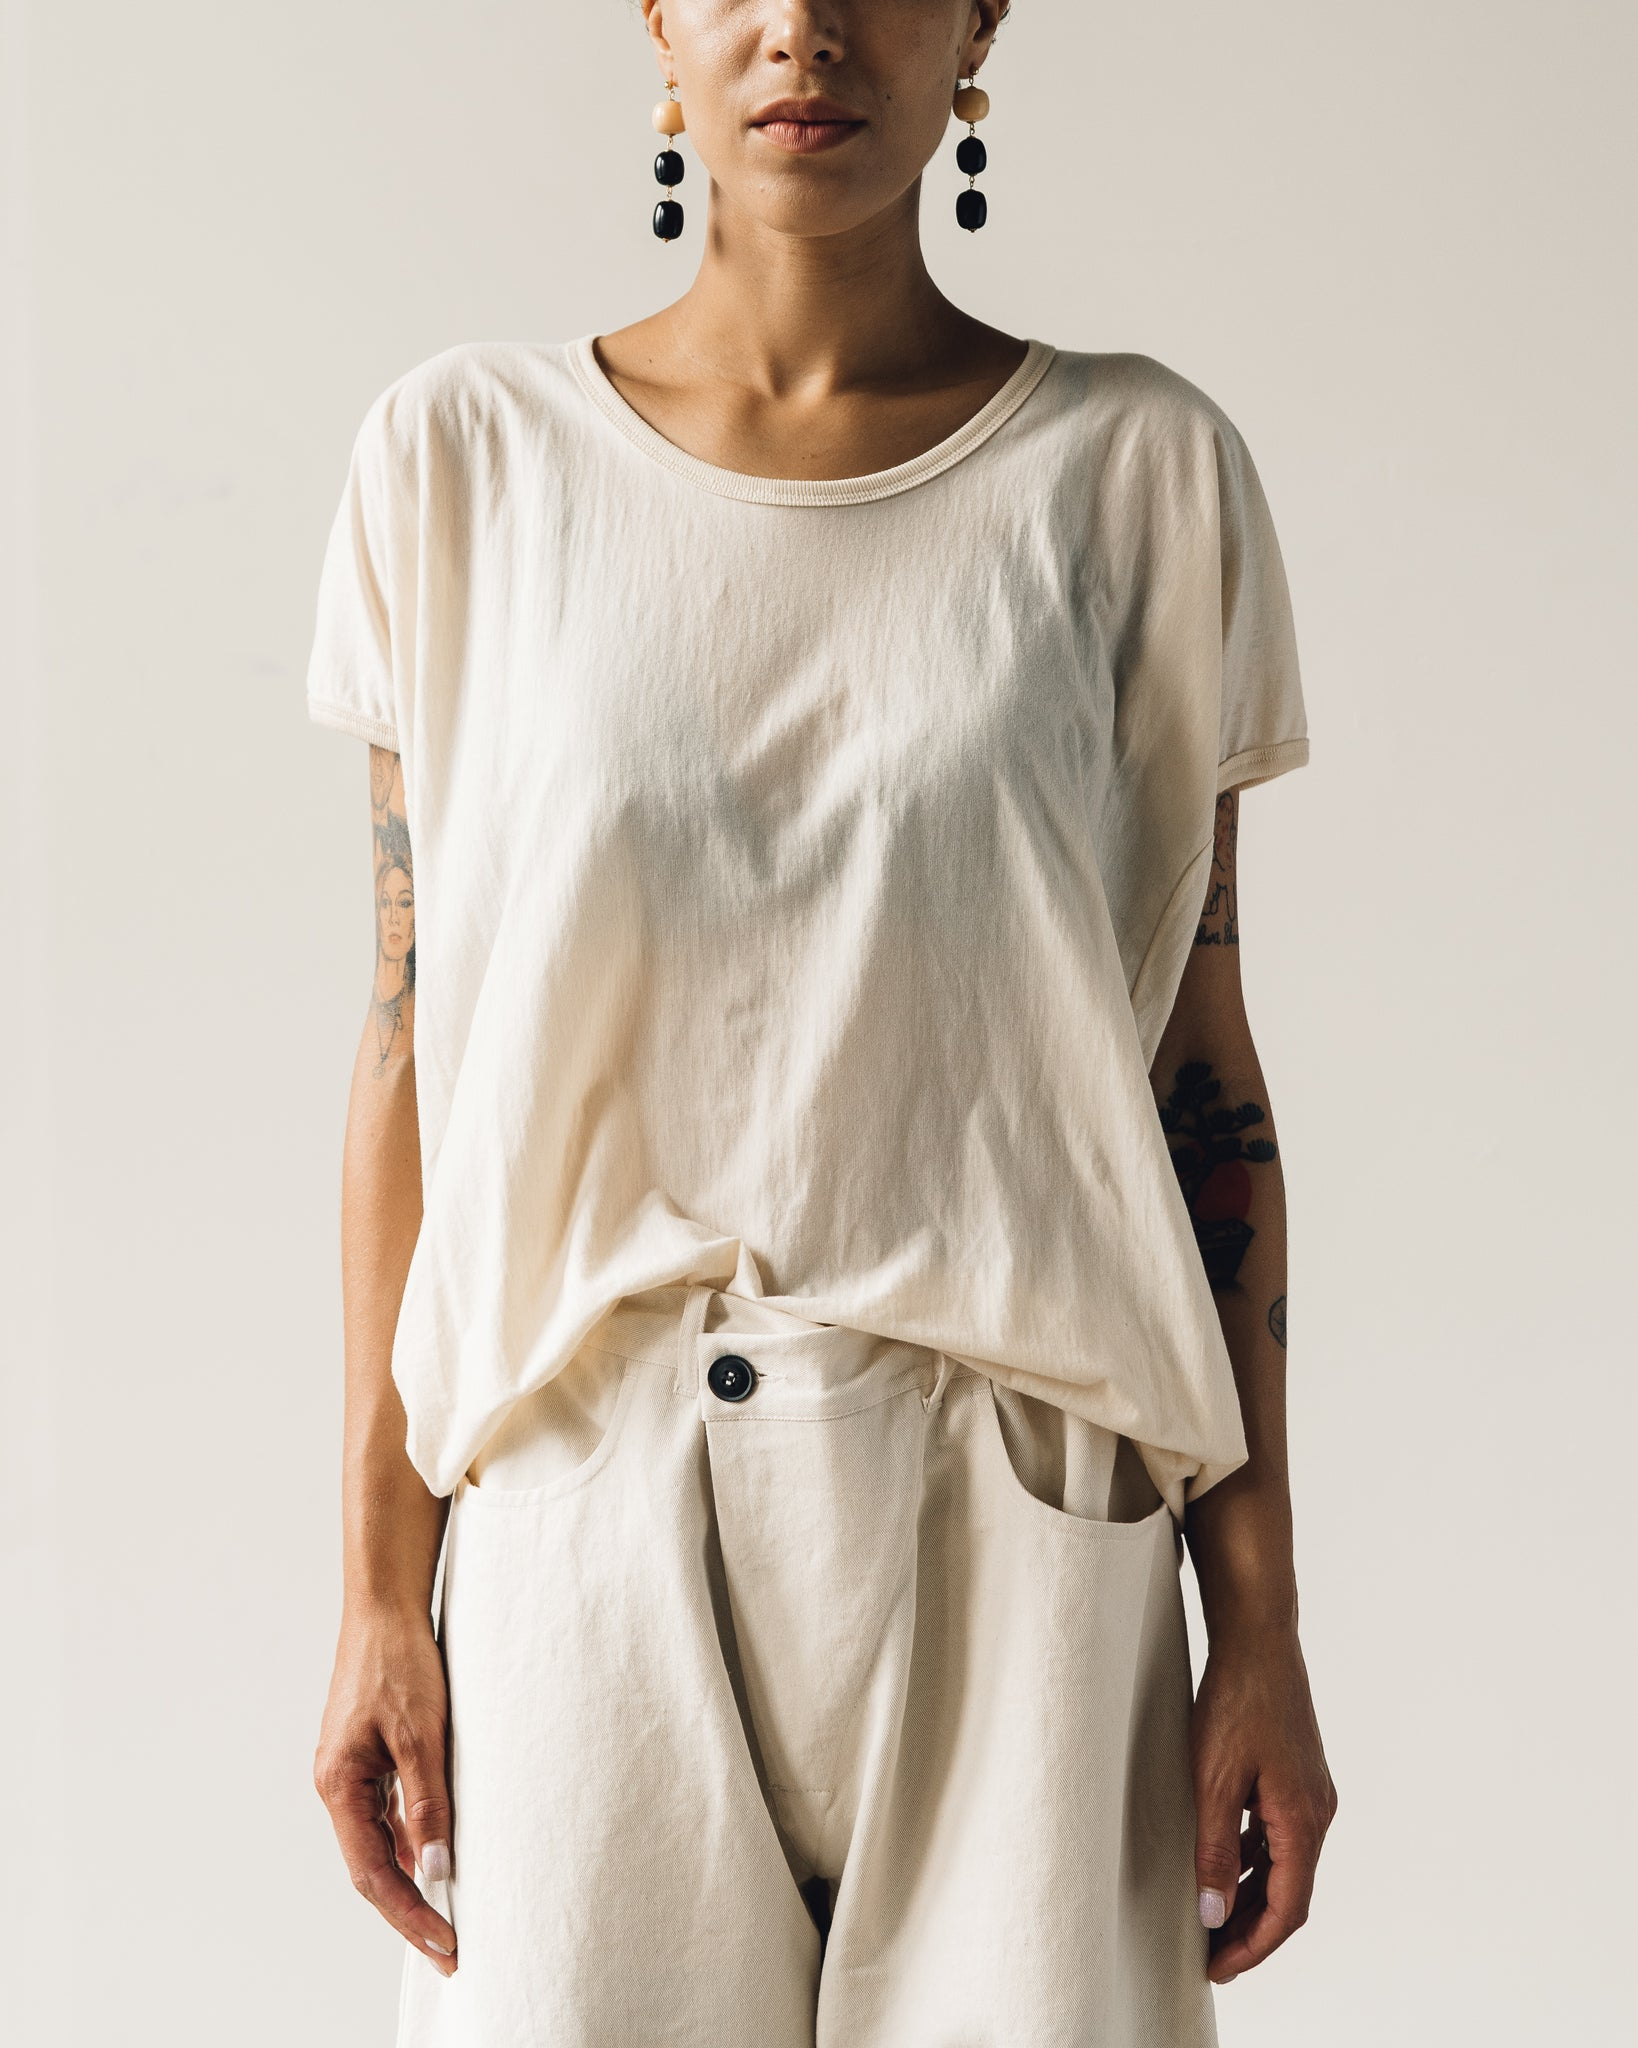 Jan-Jan Van Essche Tee #55, Natural Organic Cotton